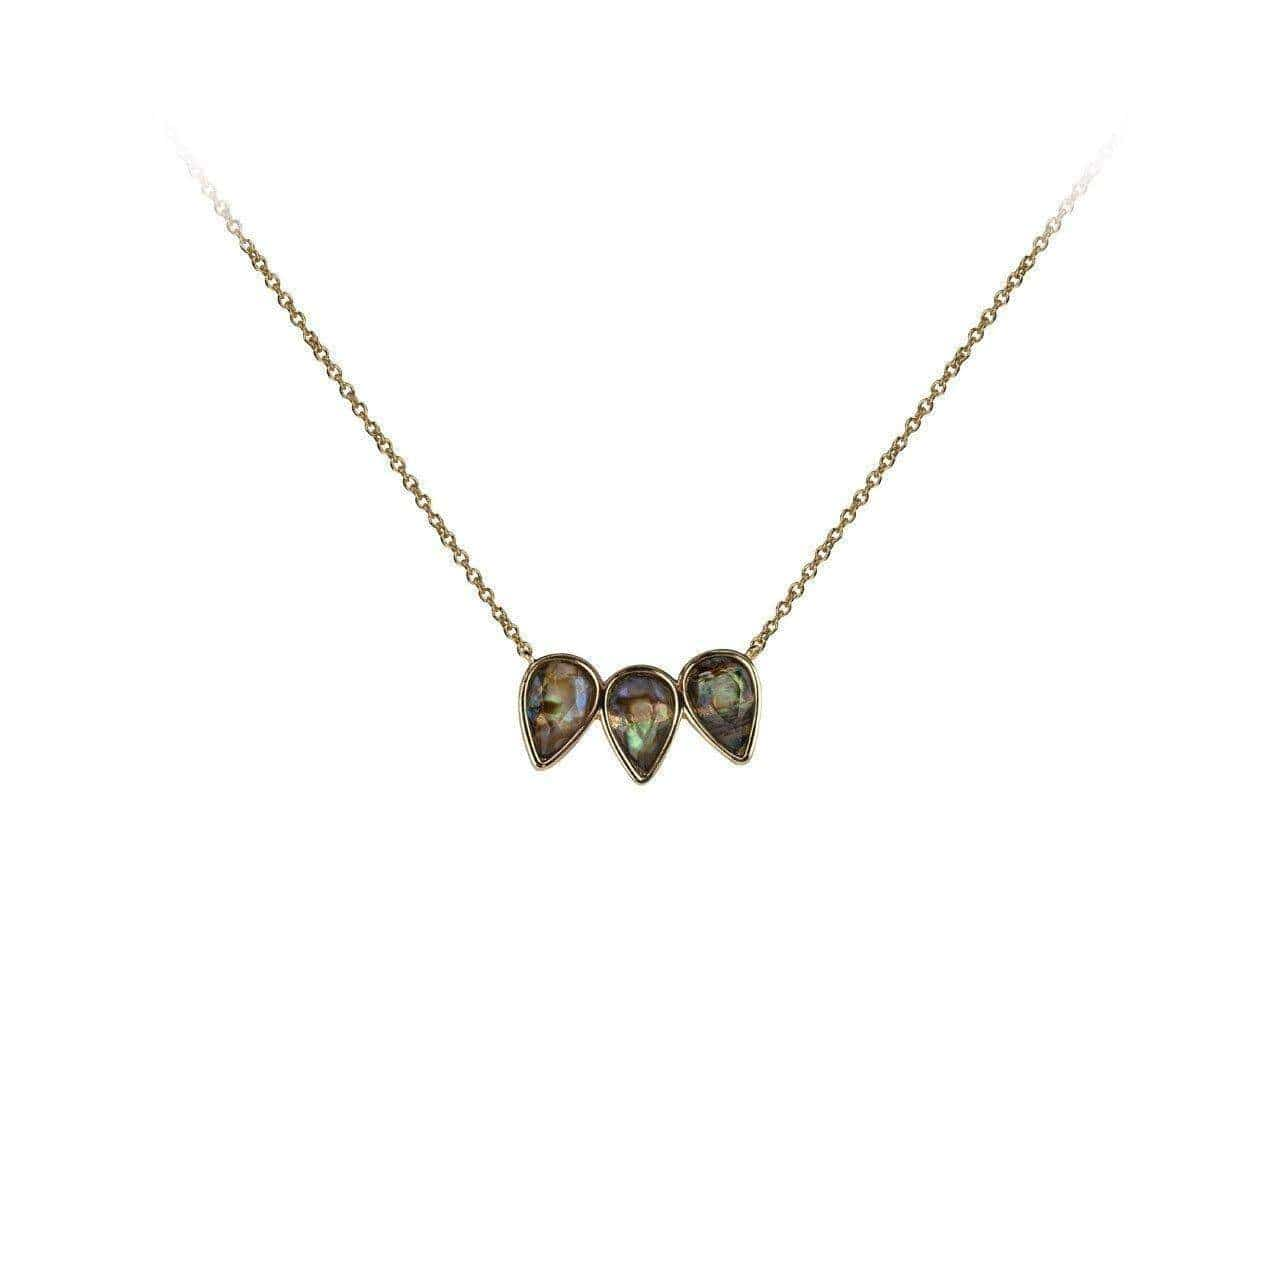 Guiding Gems Pear Trio Necklace - Abalone - KITSCH